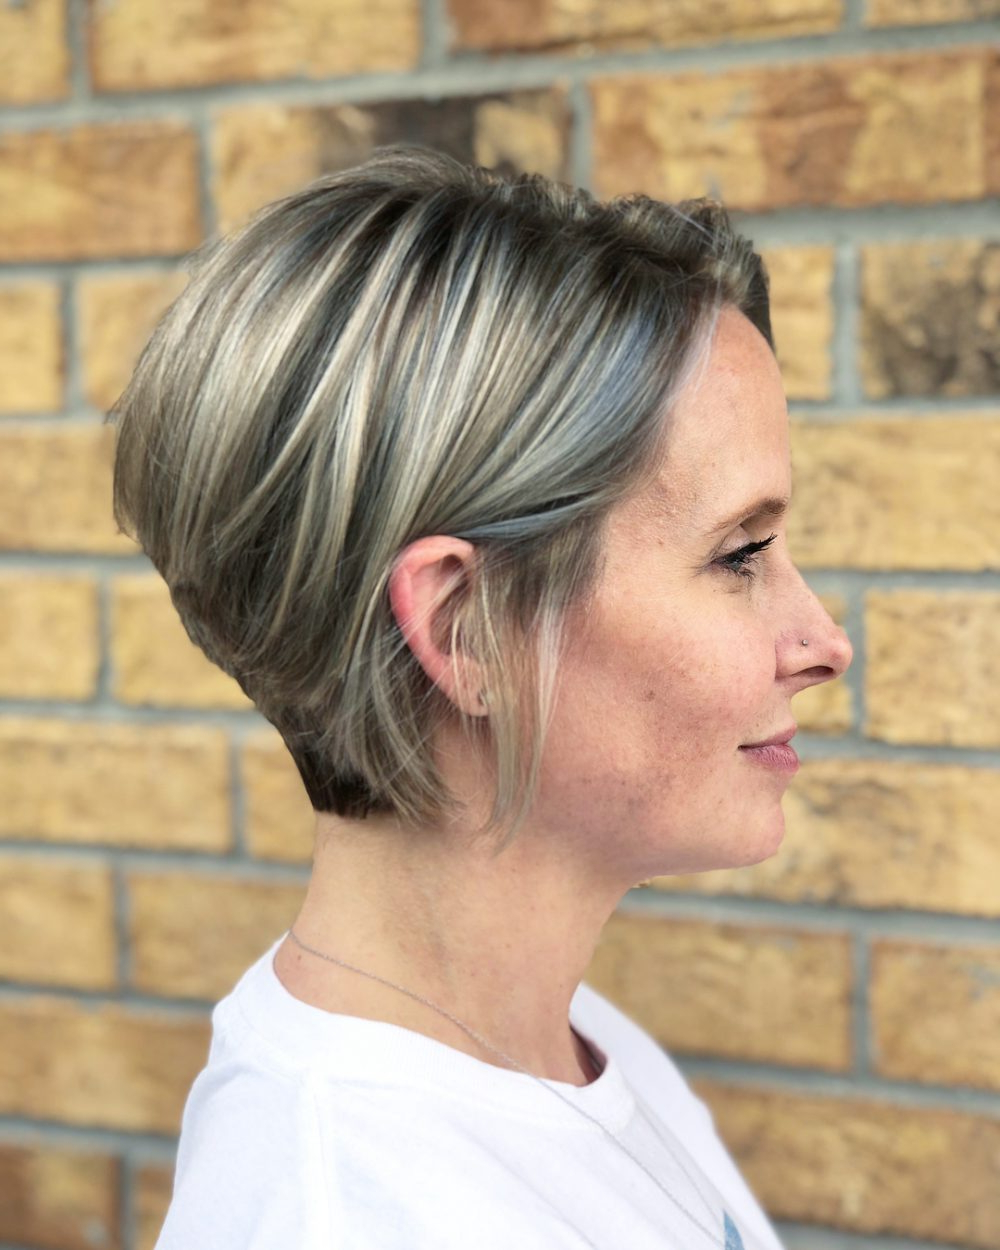 42 Sexiest Short Hairstyles For Women Over 40 In 2018 Intended For Short Haircuts For Women In Their 40S (View 4 of 25)